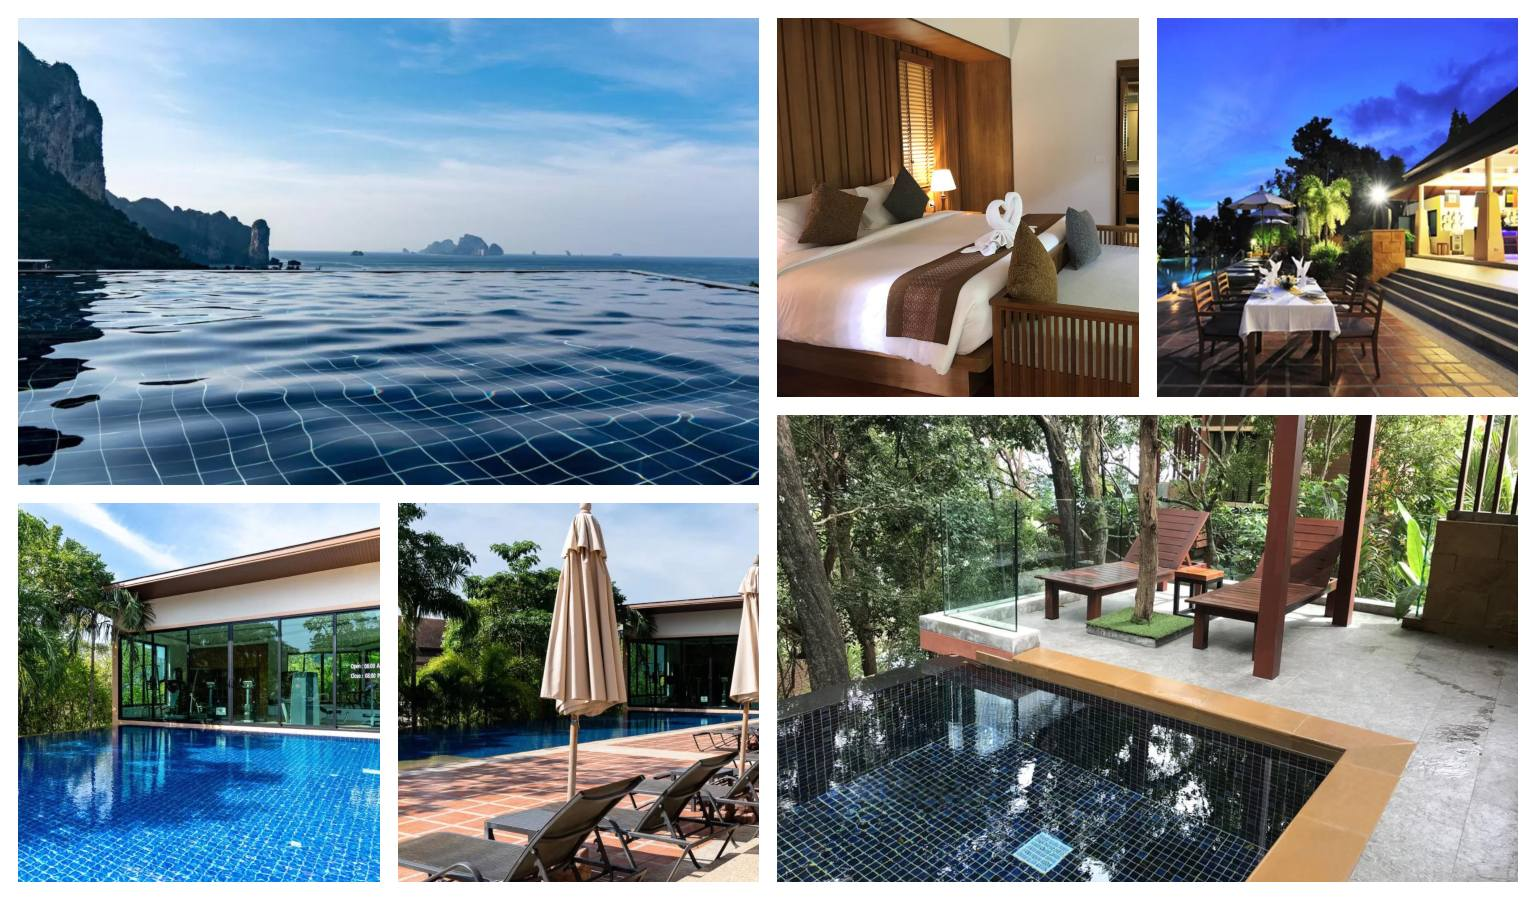 Collage Ao Nang Cliff Beach Resort in Ao Nang, Thailand